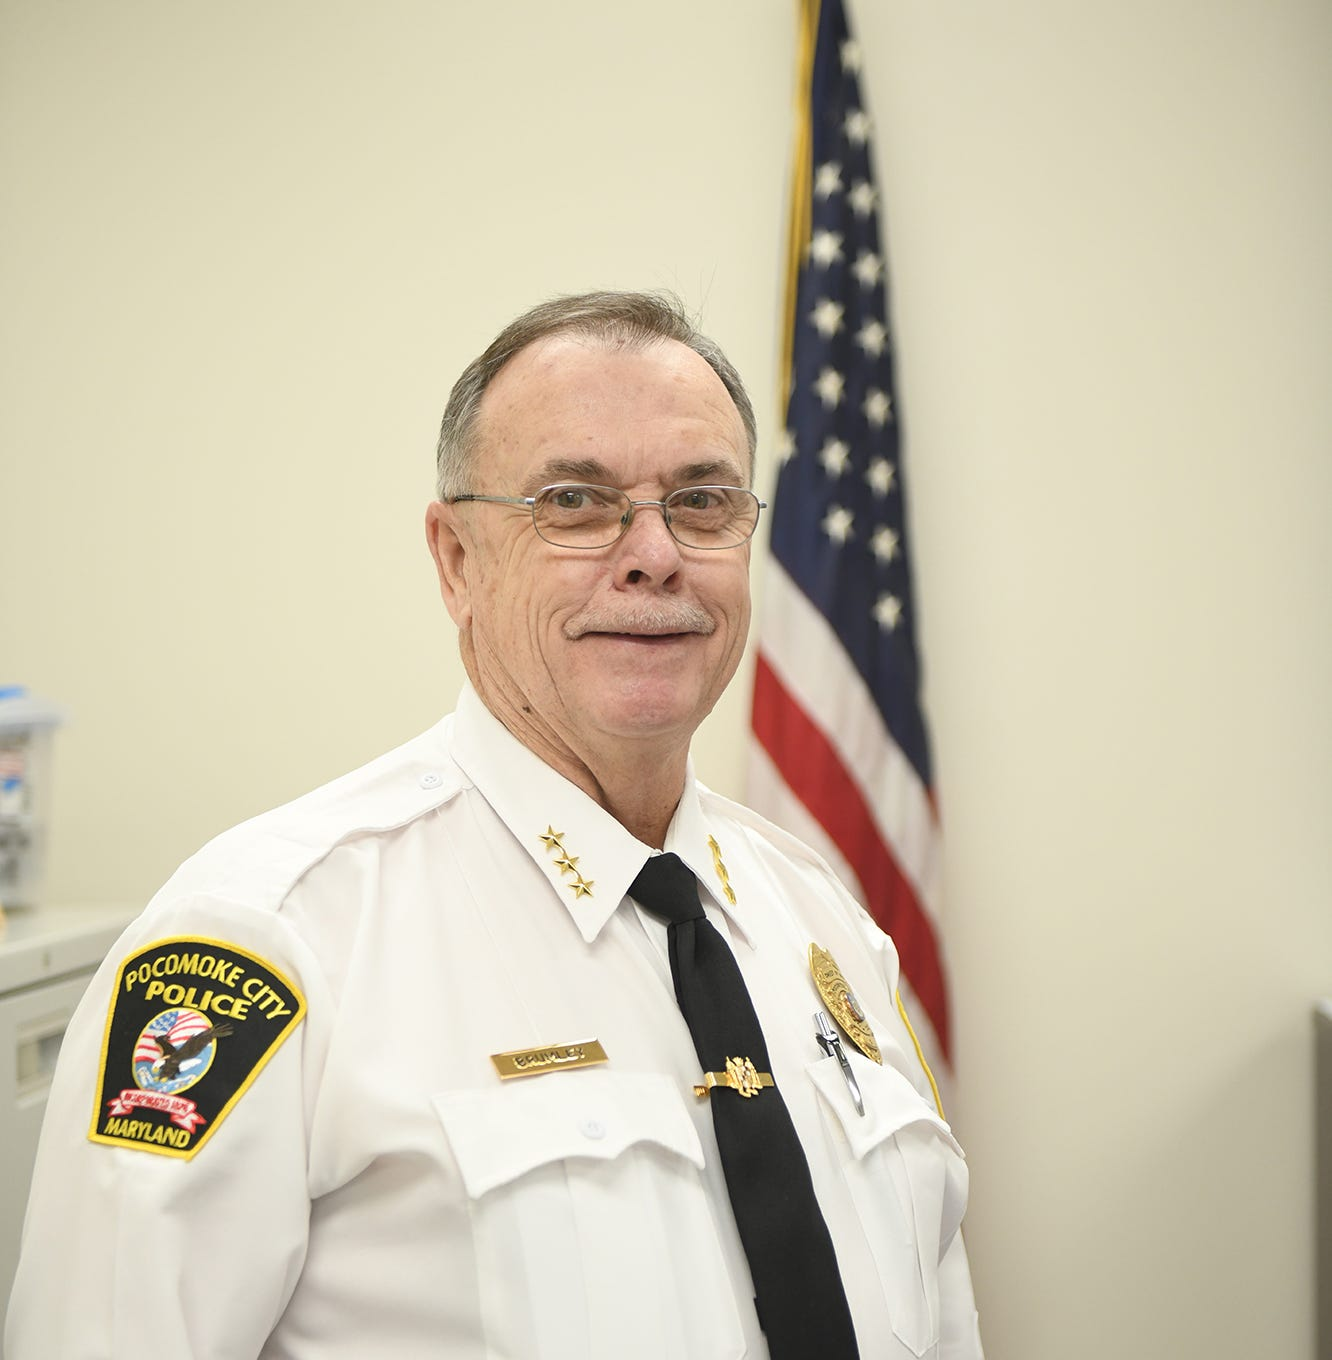 A personal approach: Meet Pocomoke City's new police chief